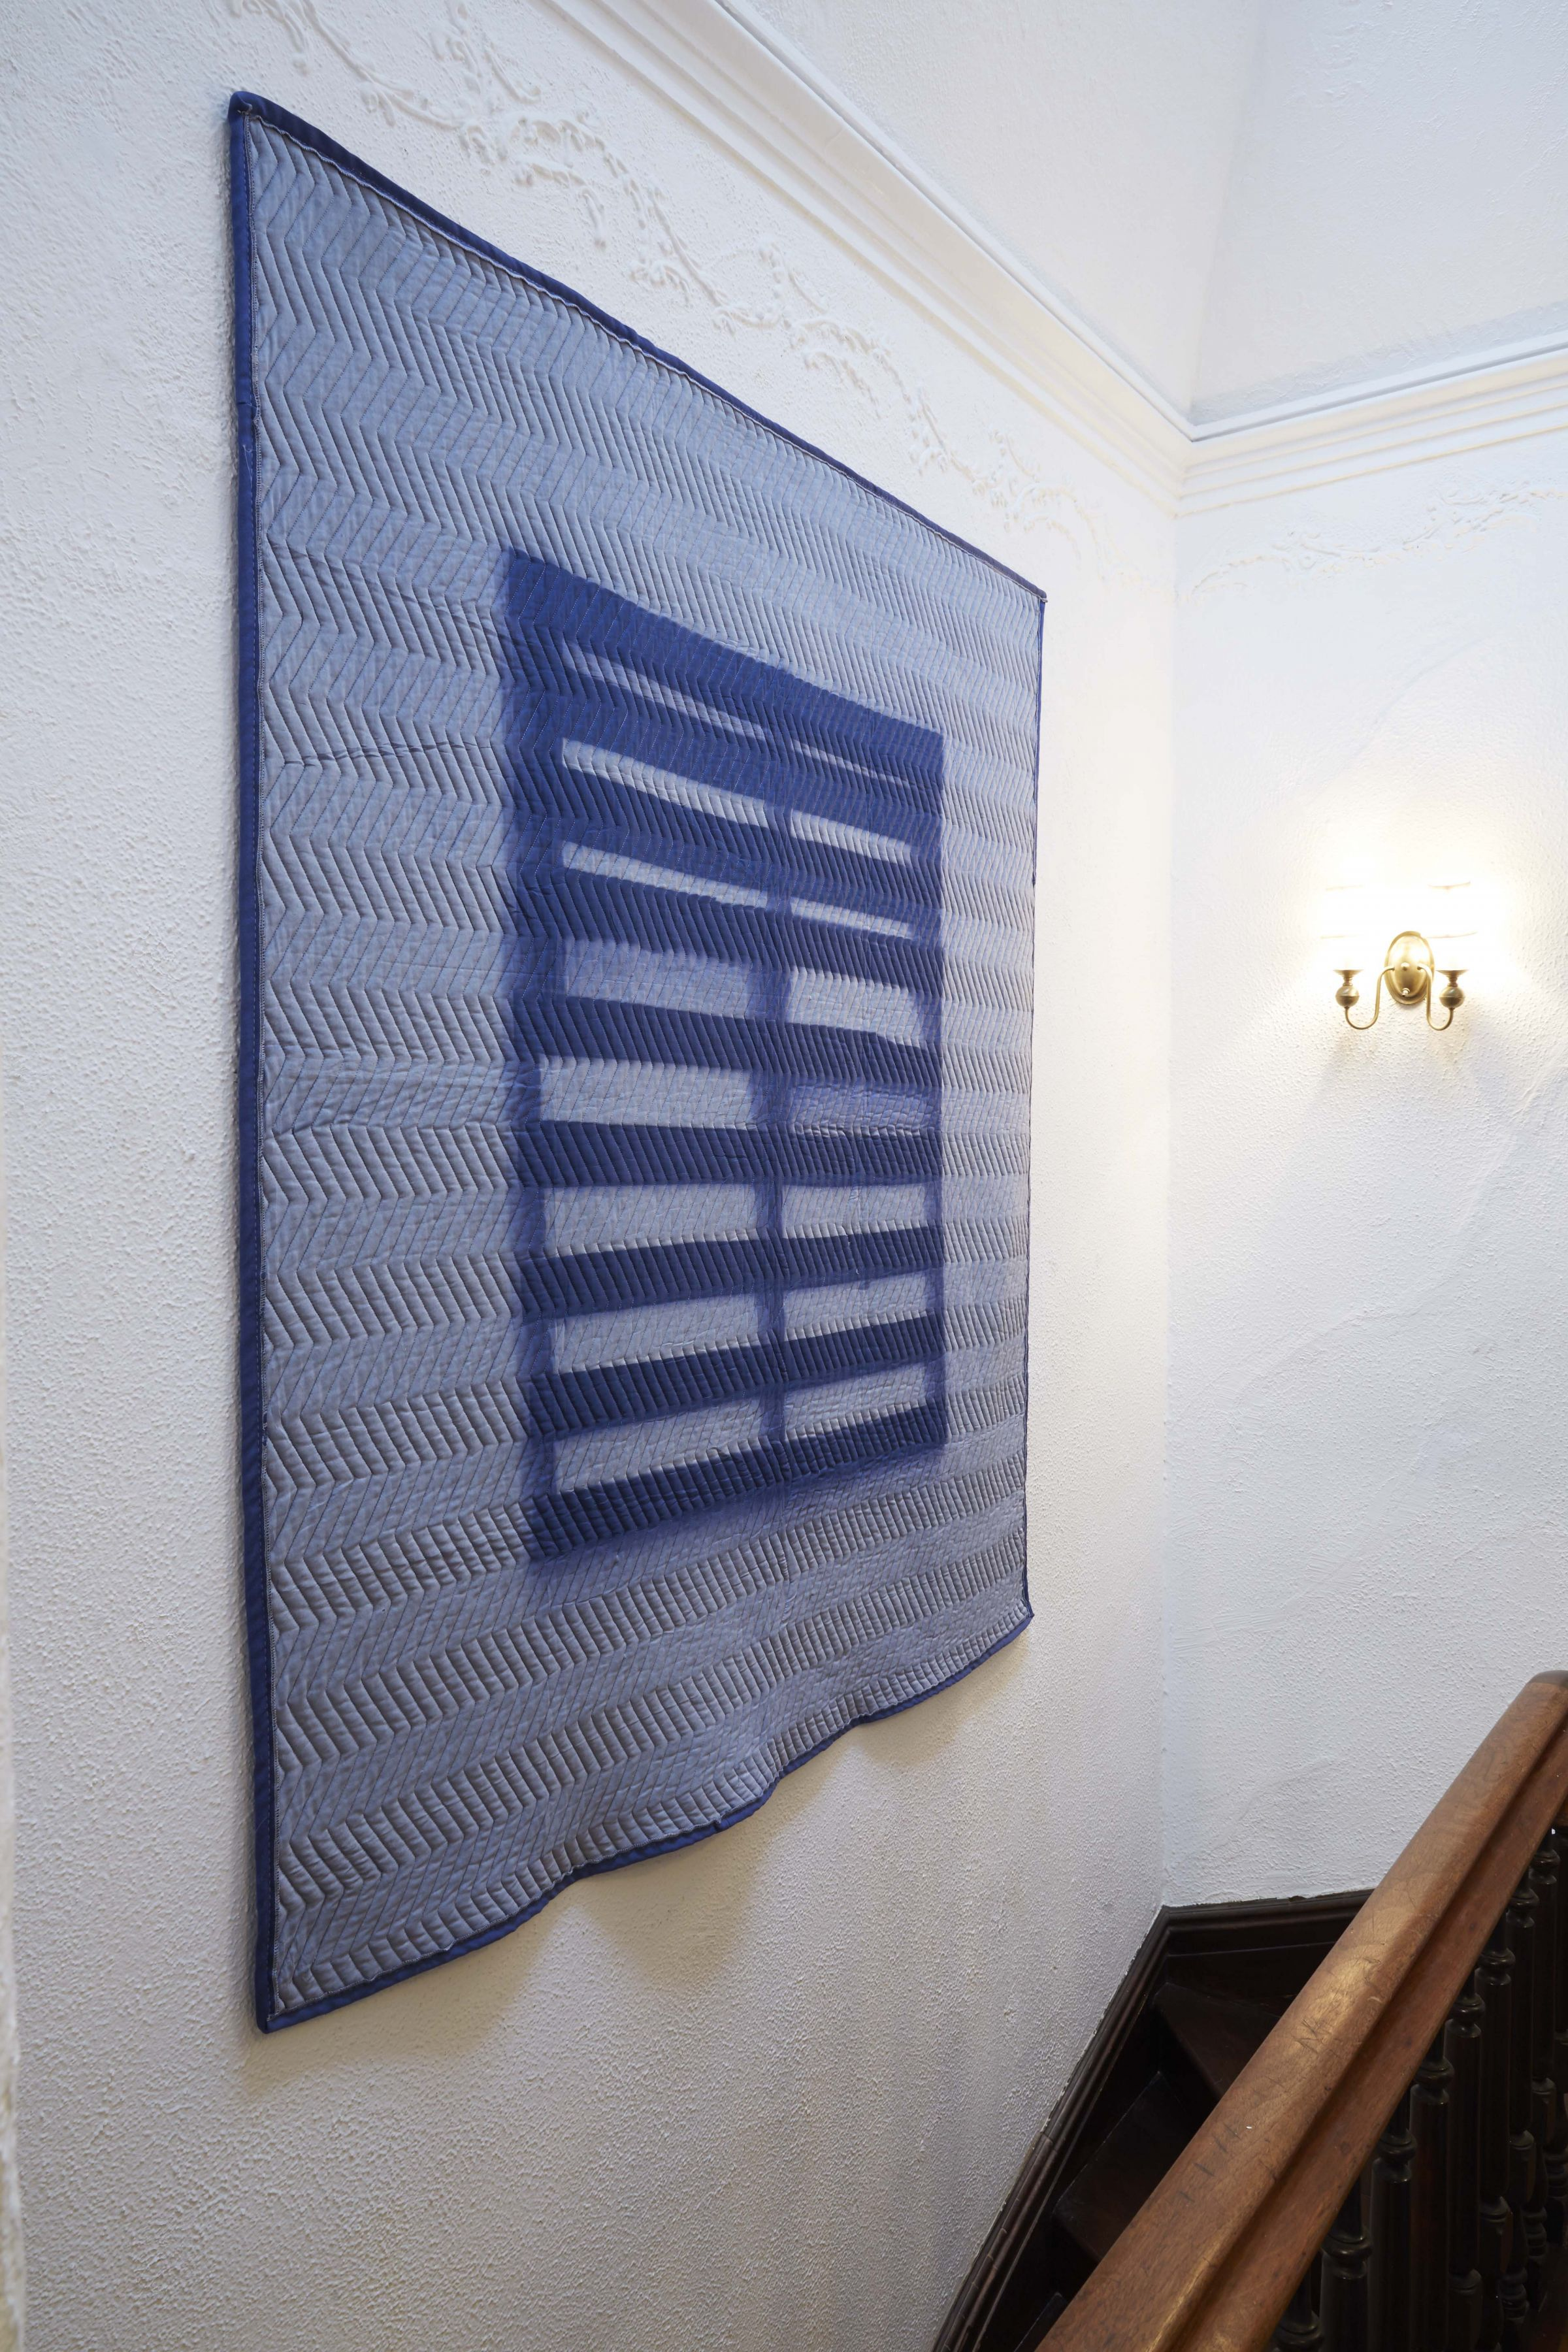 The Material Image(Installation View), Marianne Boesky Gallery (Uptown), 2014